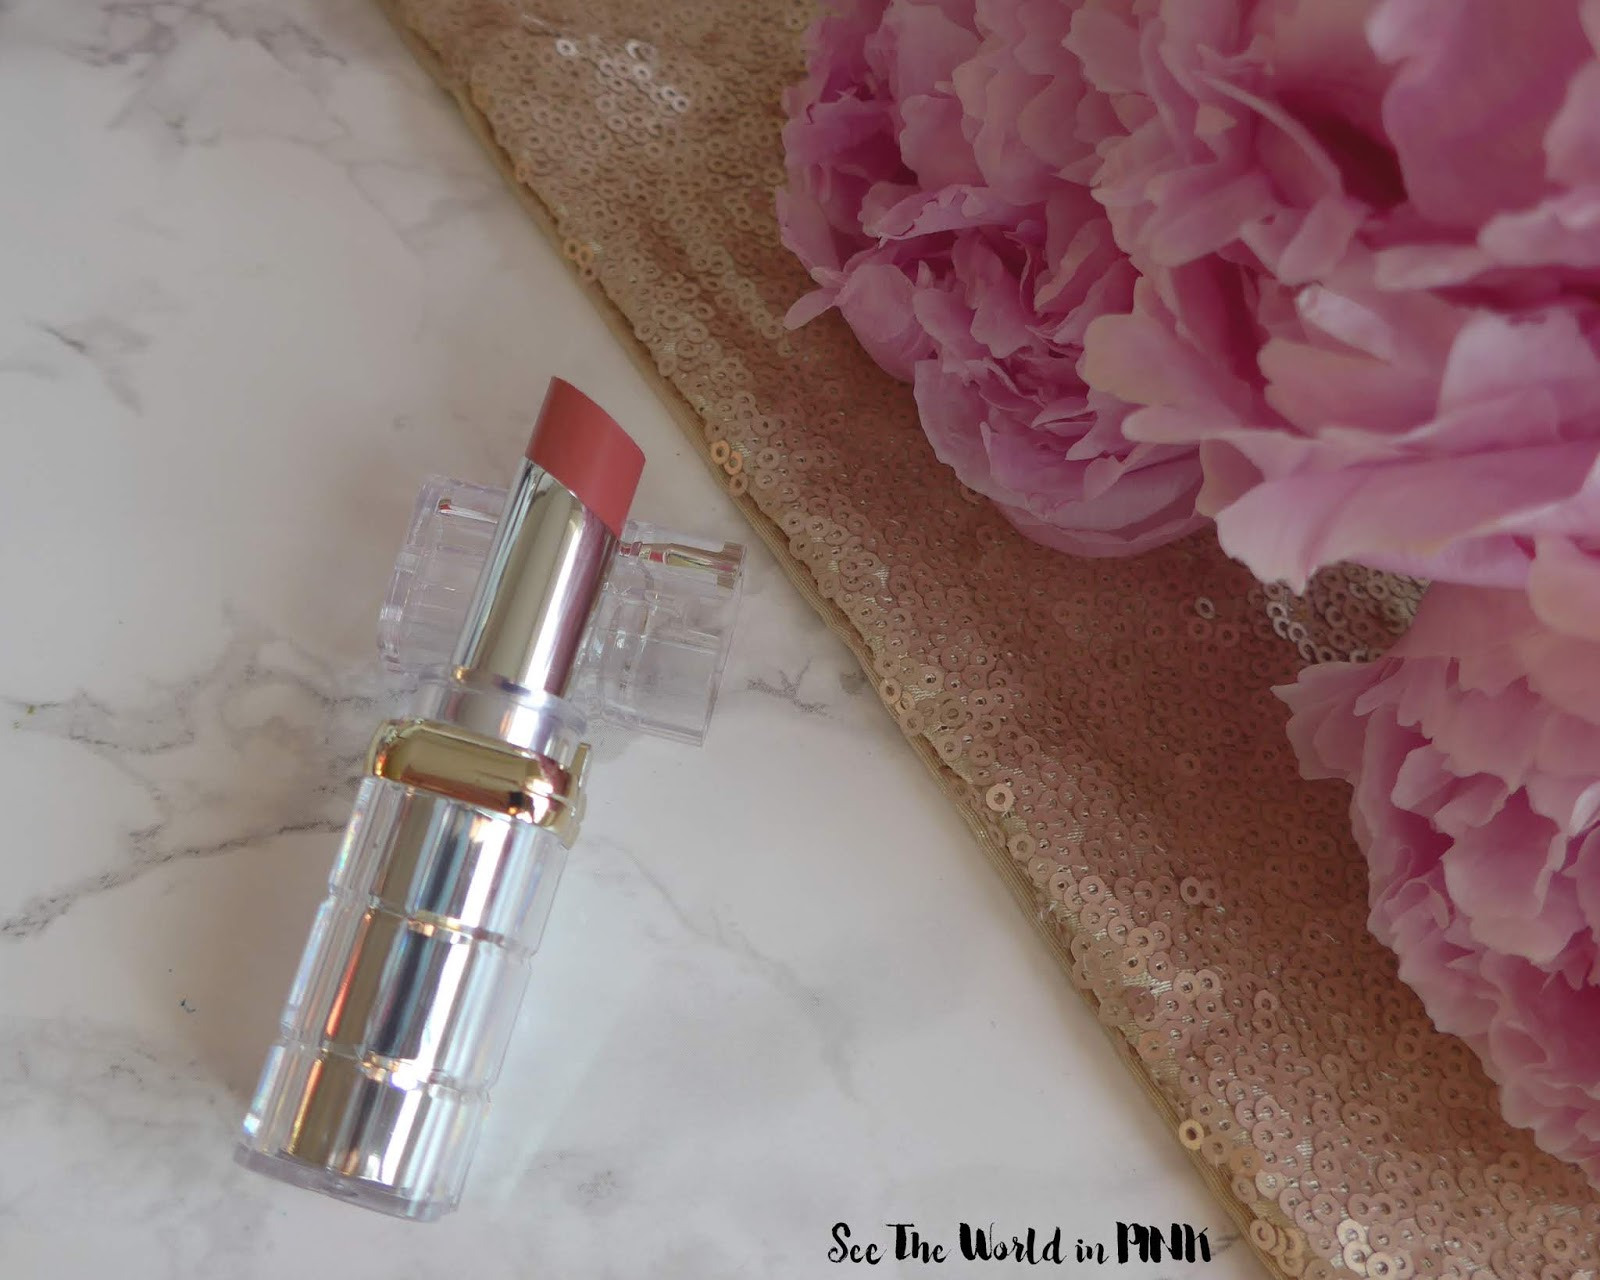 l'oreal colour riche shine lipstick in sparkling rose